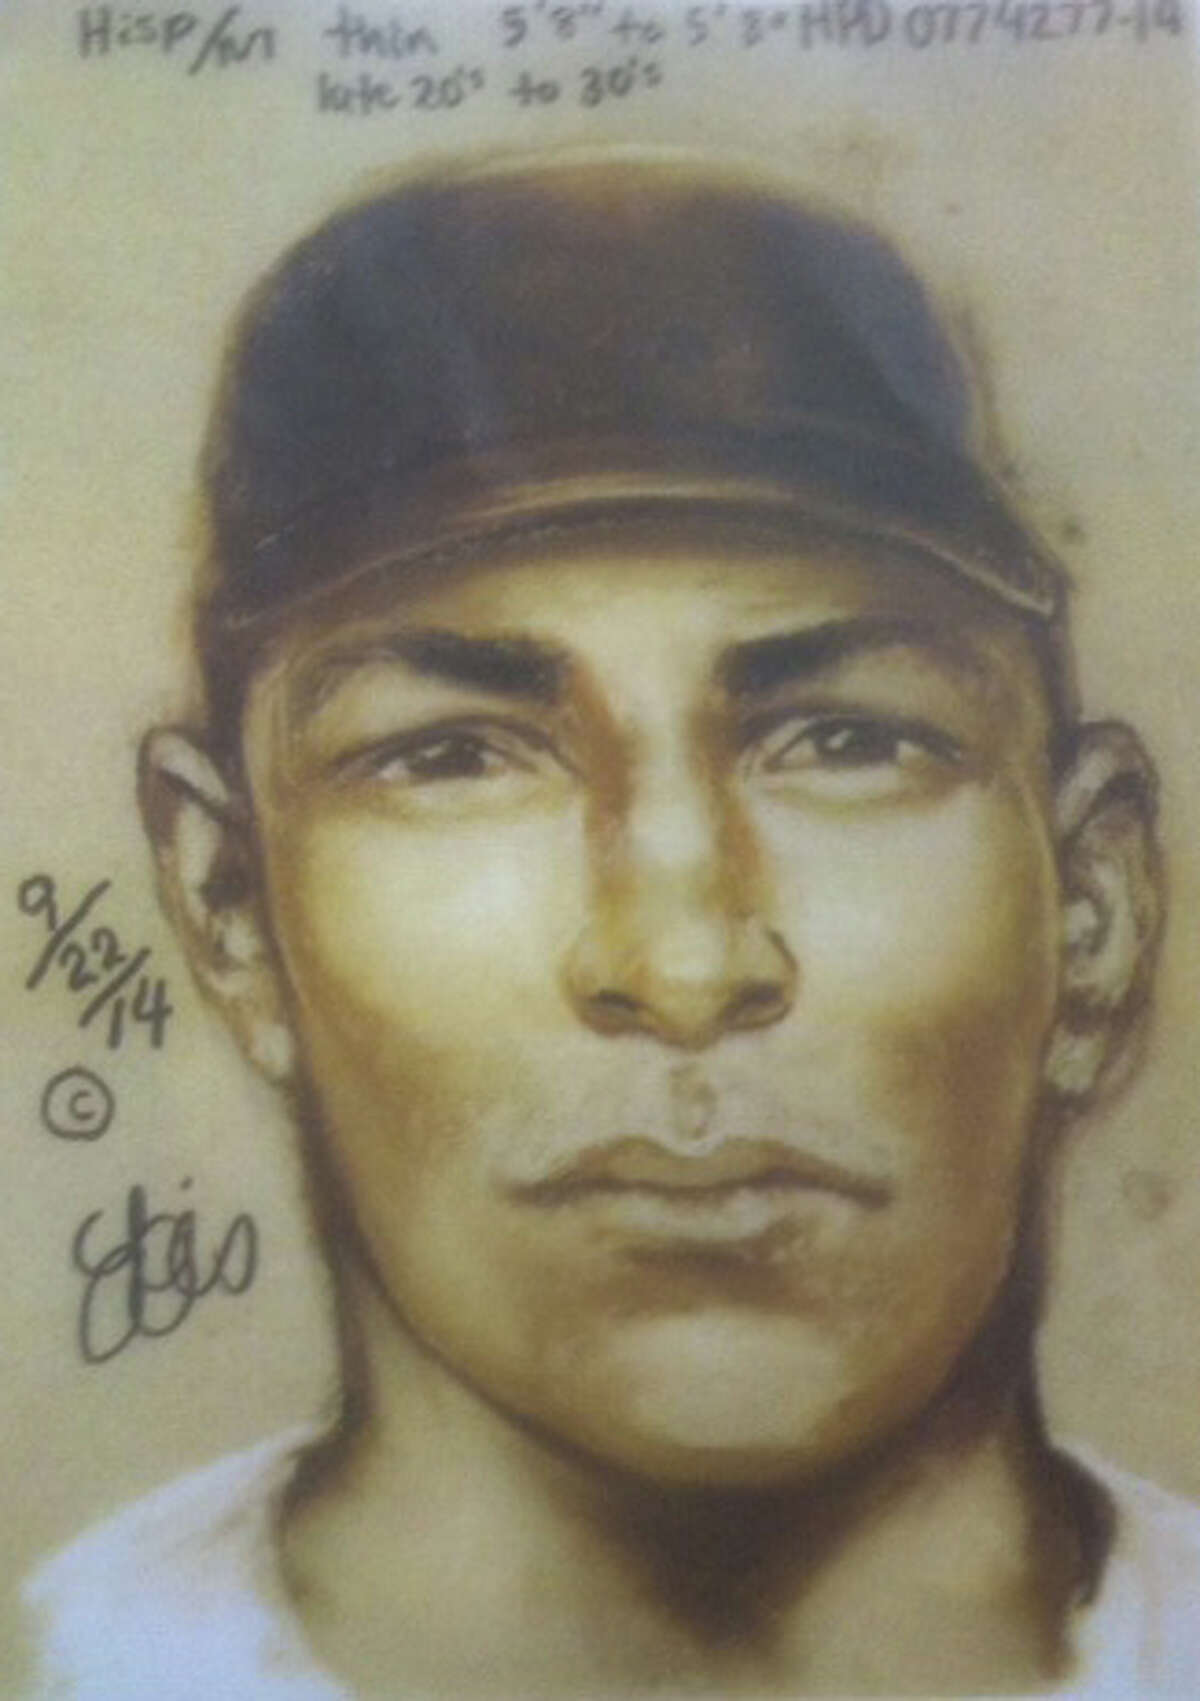 Houston Police have released two composite images, including this one, of persons of interest in the June 20, 2014 killing of Pedro Diaz.